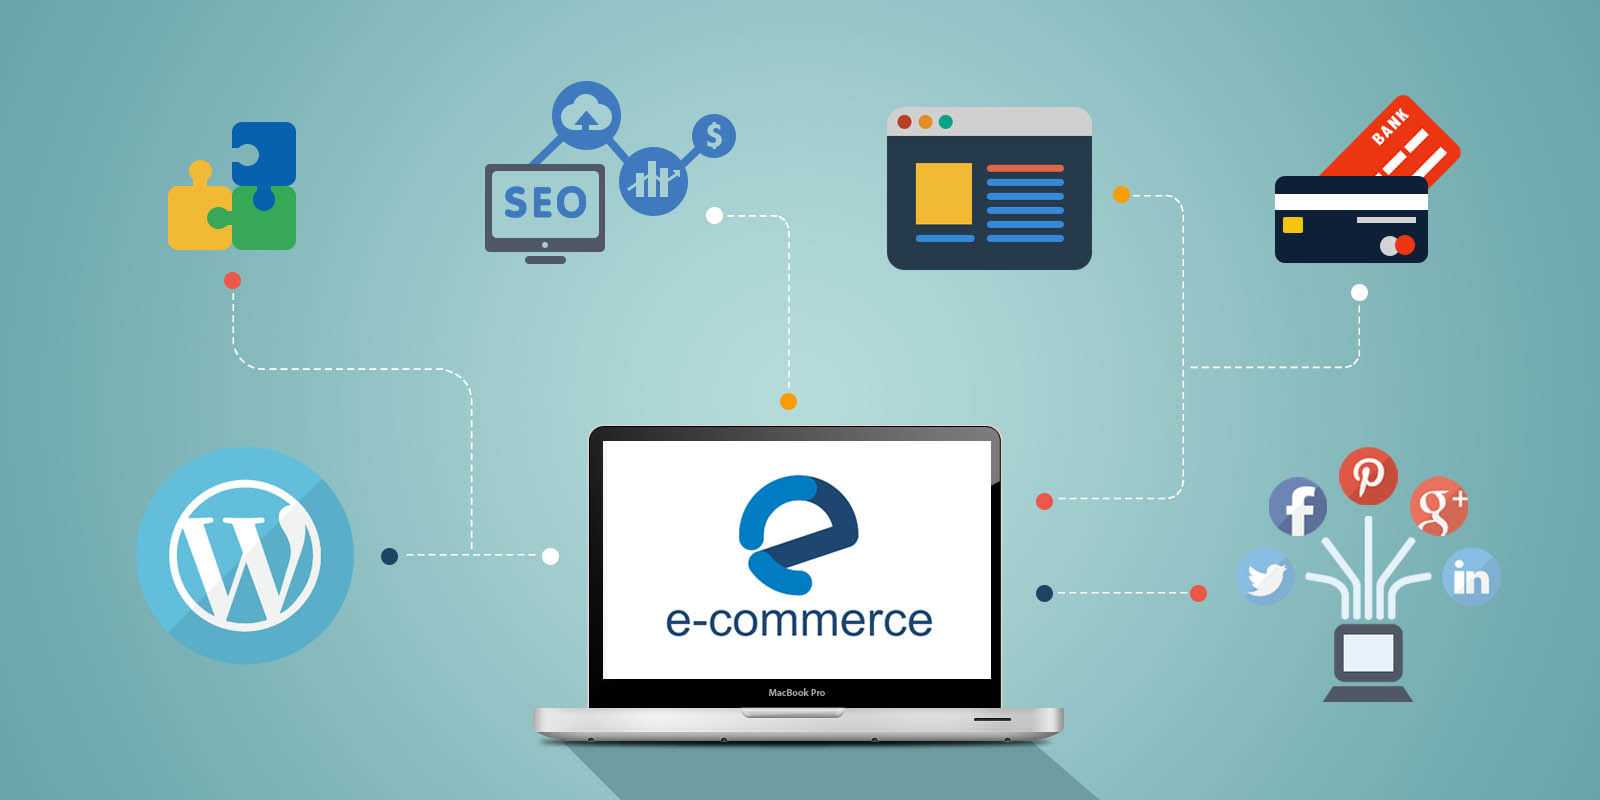 Important Tips for Launching an E-commerce Website